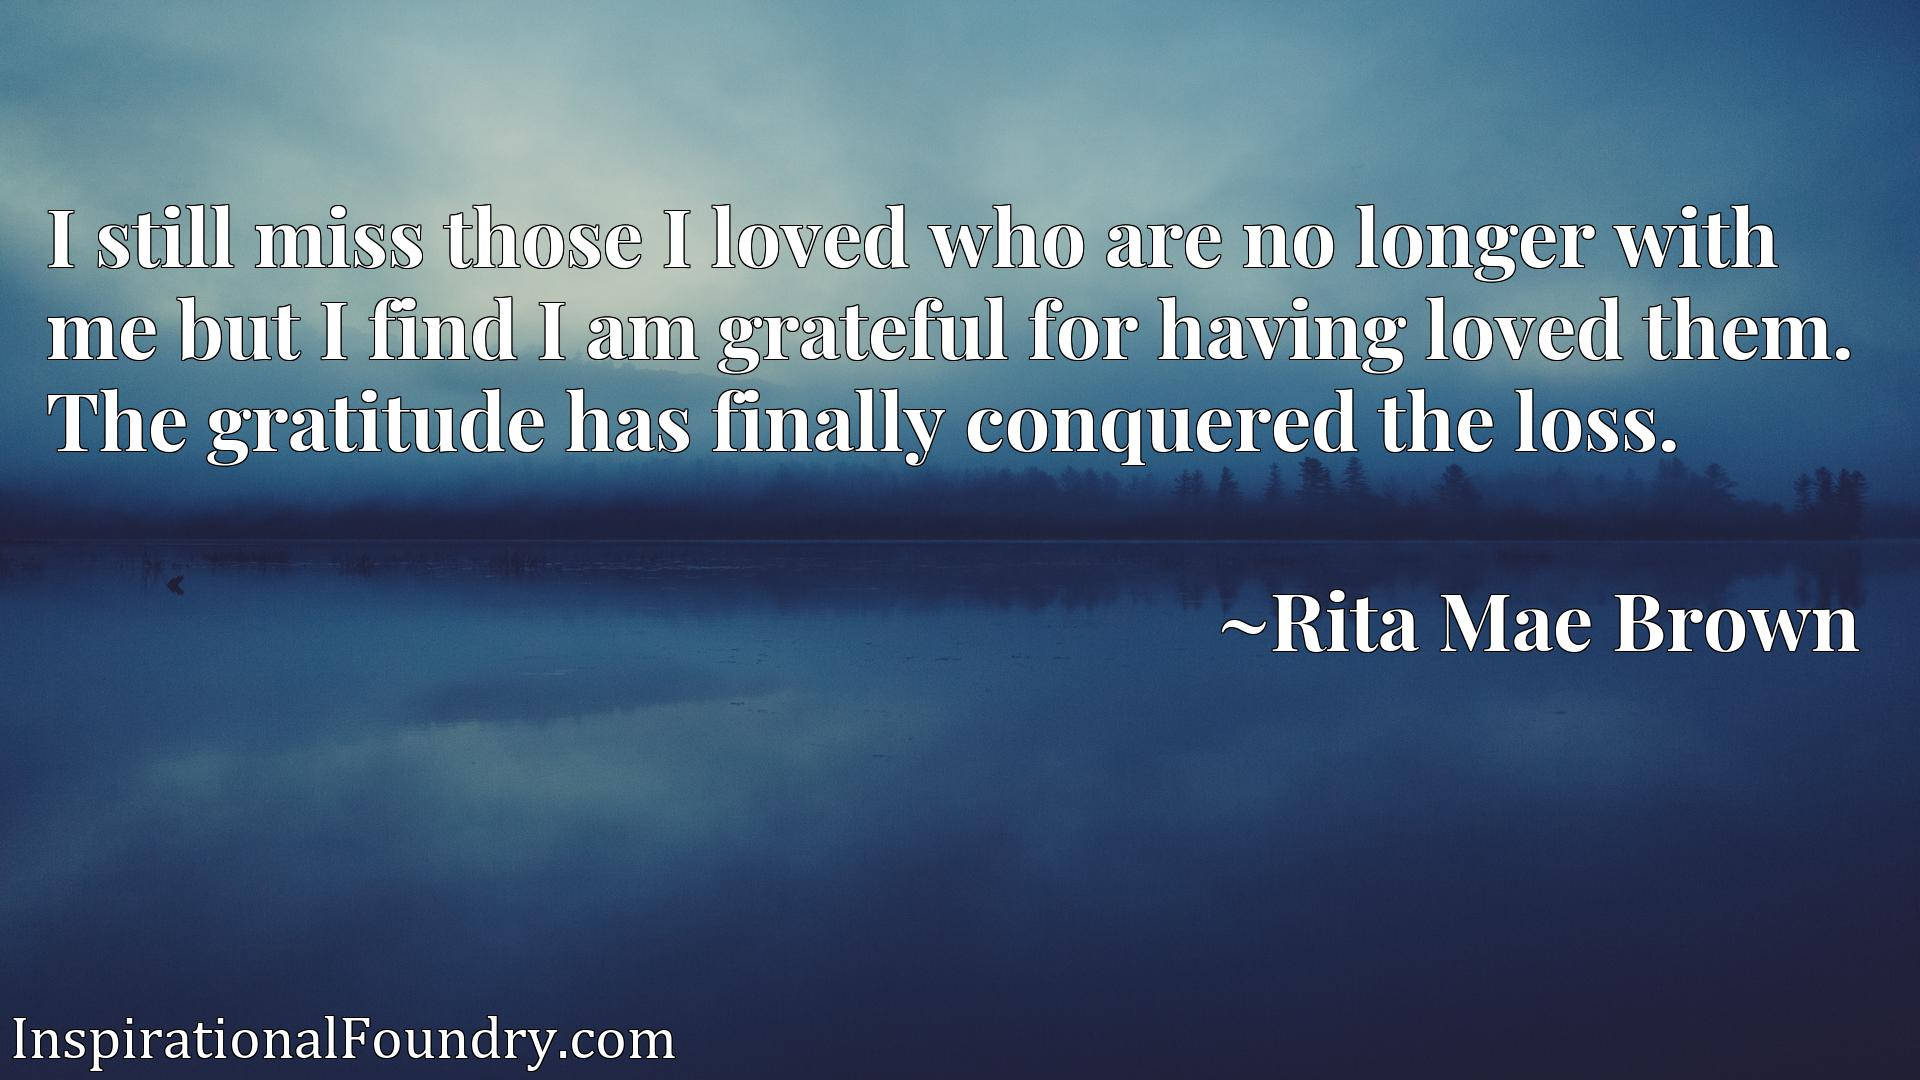 I still miss those I loved who are no longer with me but I find I am grateful for having loved them. The gratitude has finally conquered the loss.